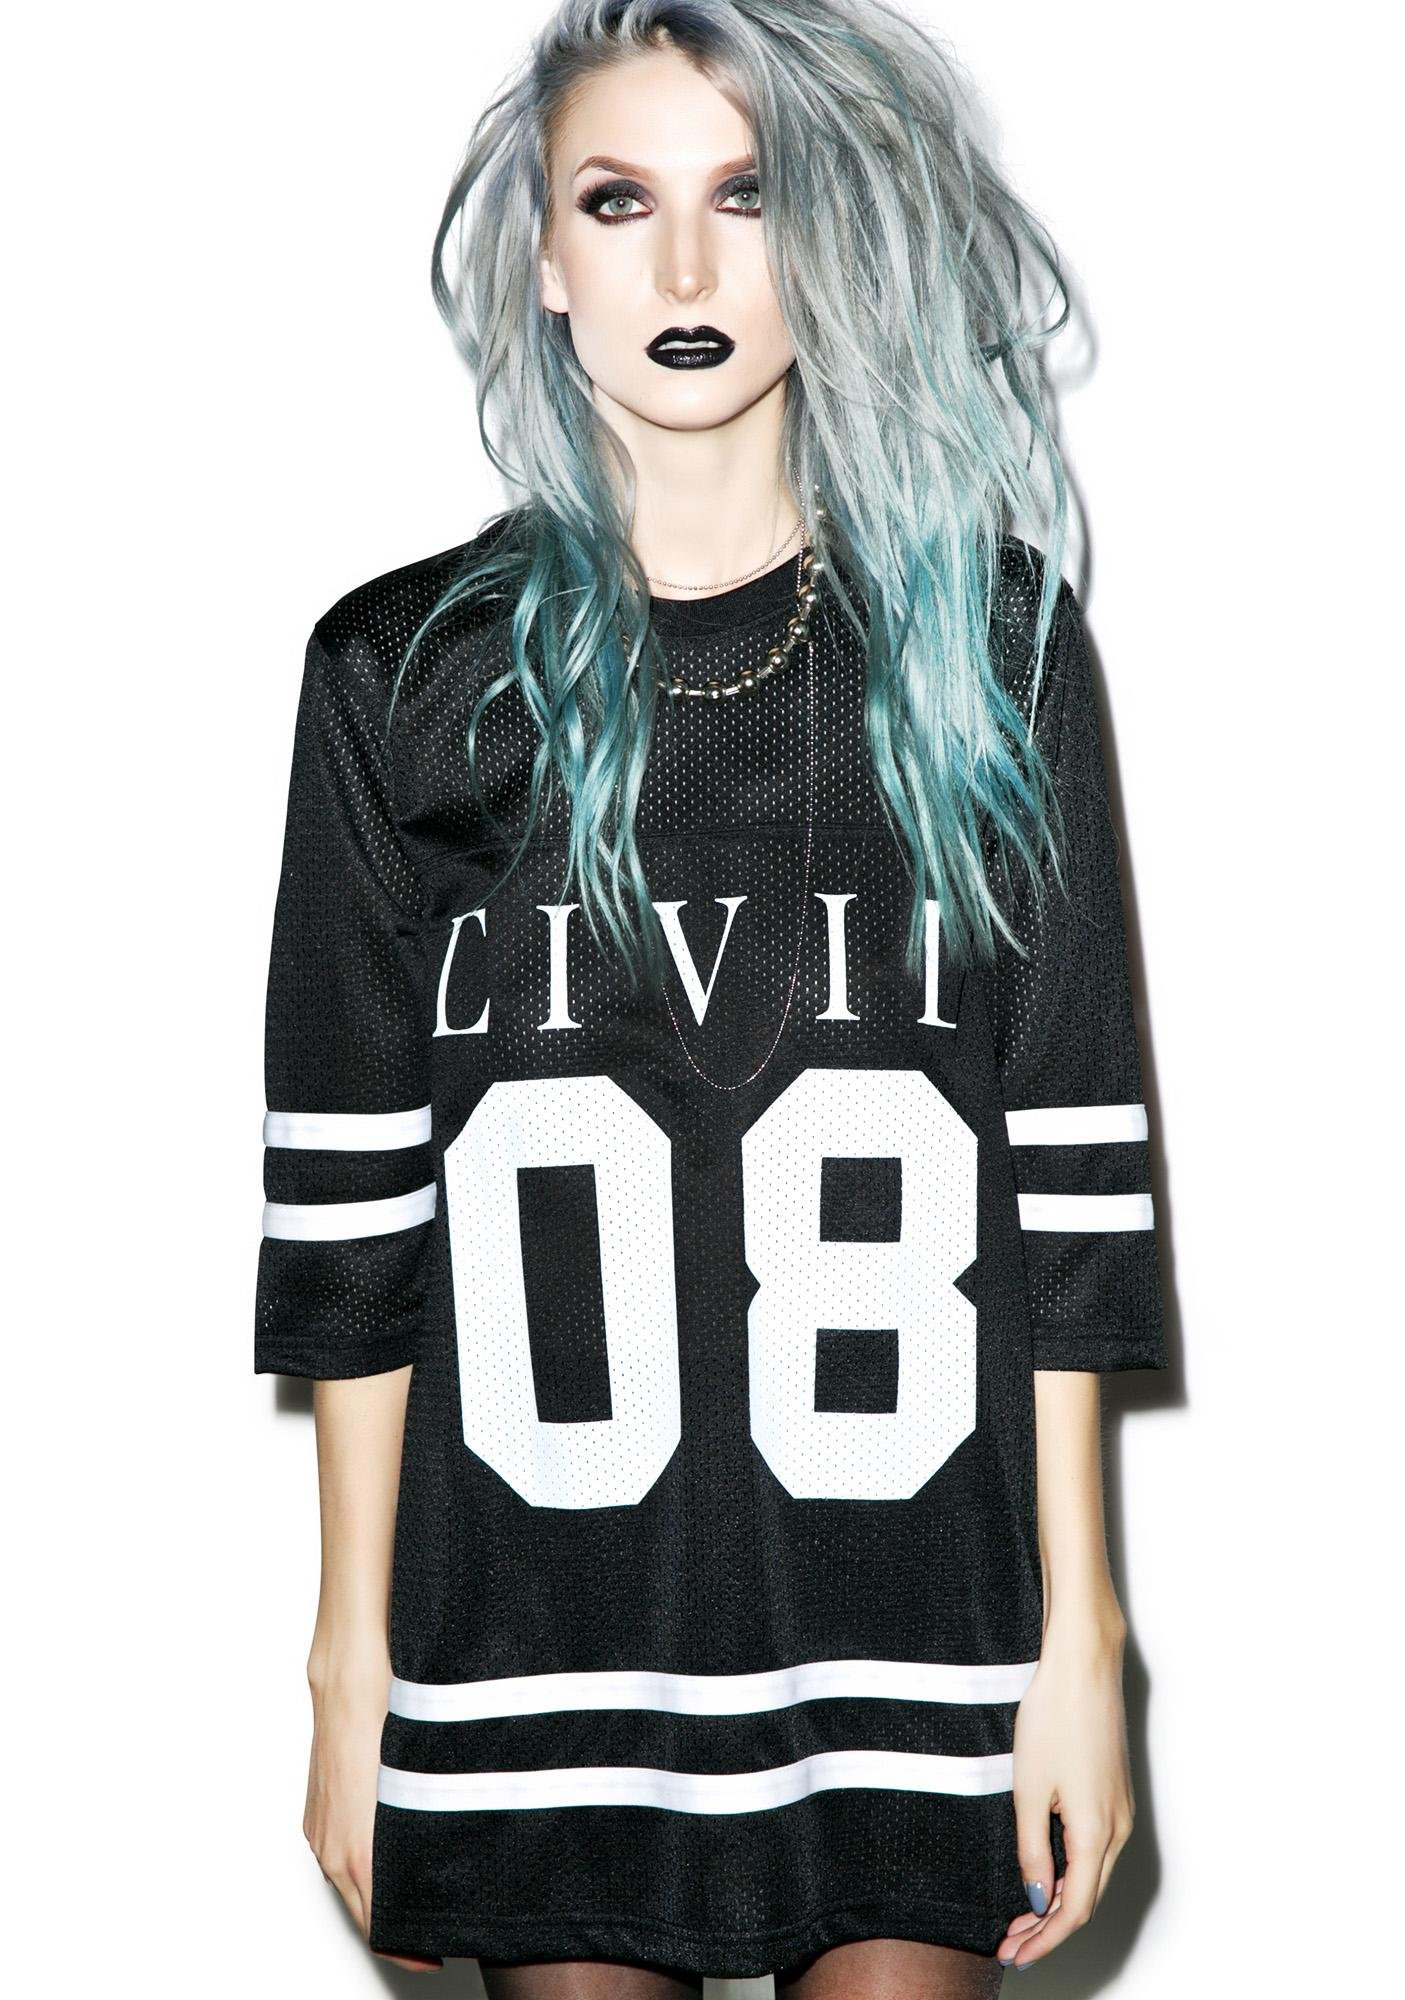 Civil Clothing Civil 08 Mesh Jersey Dress